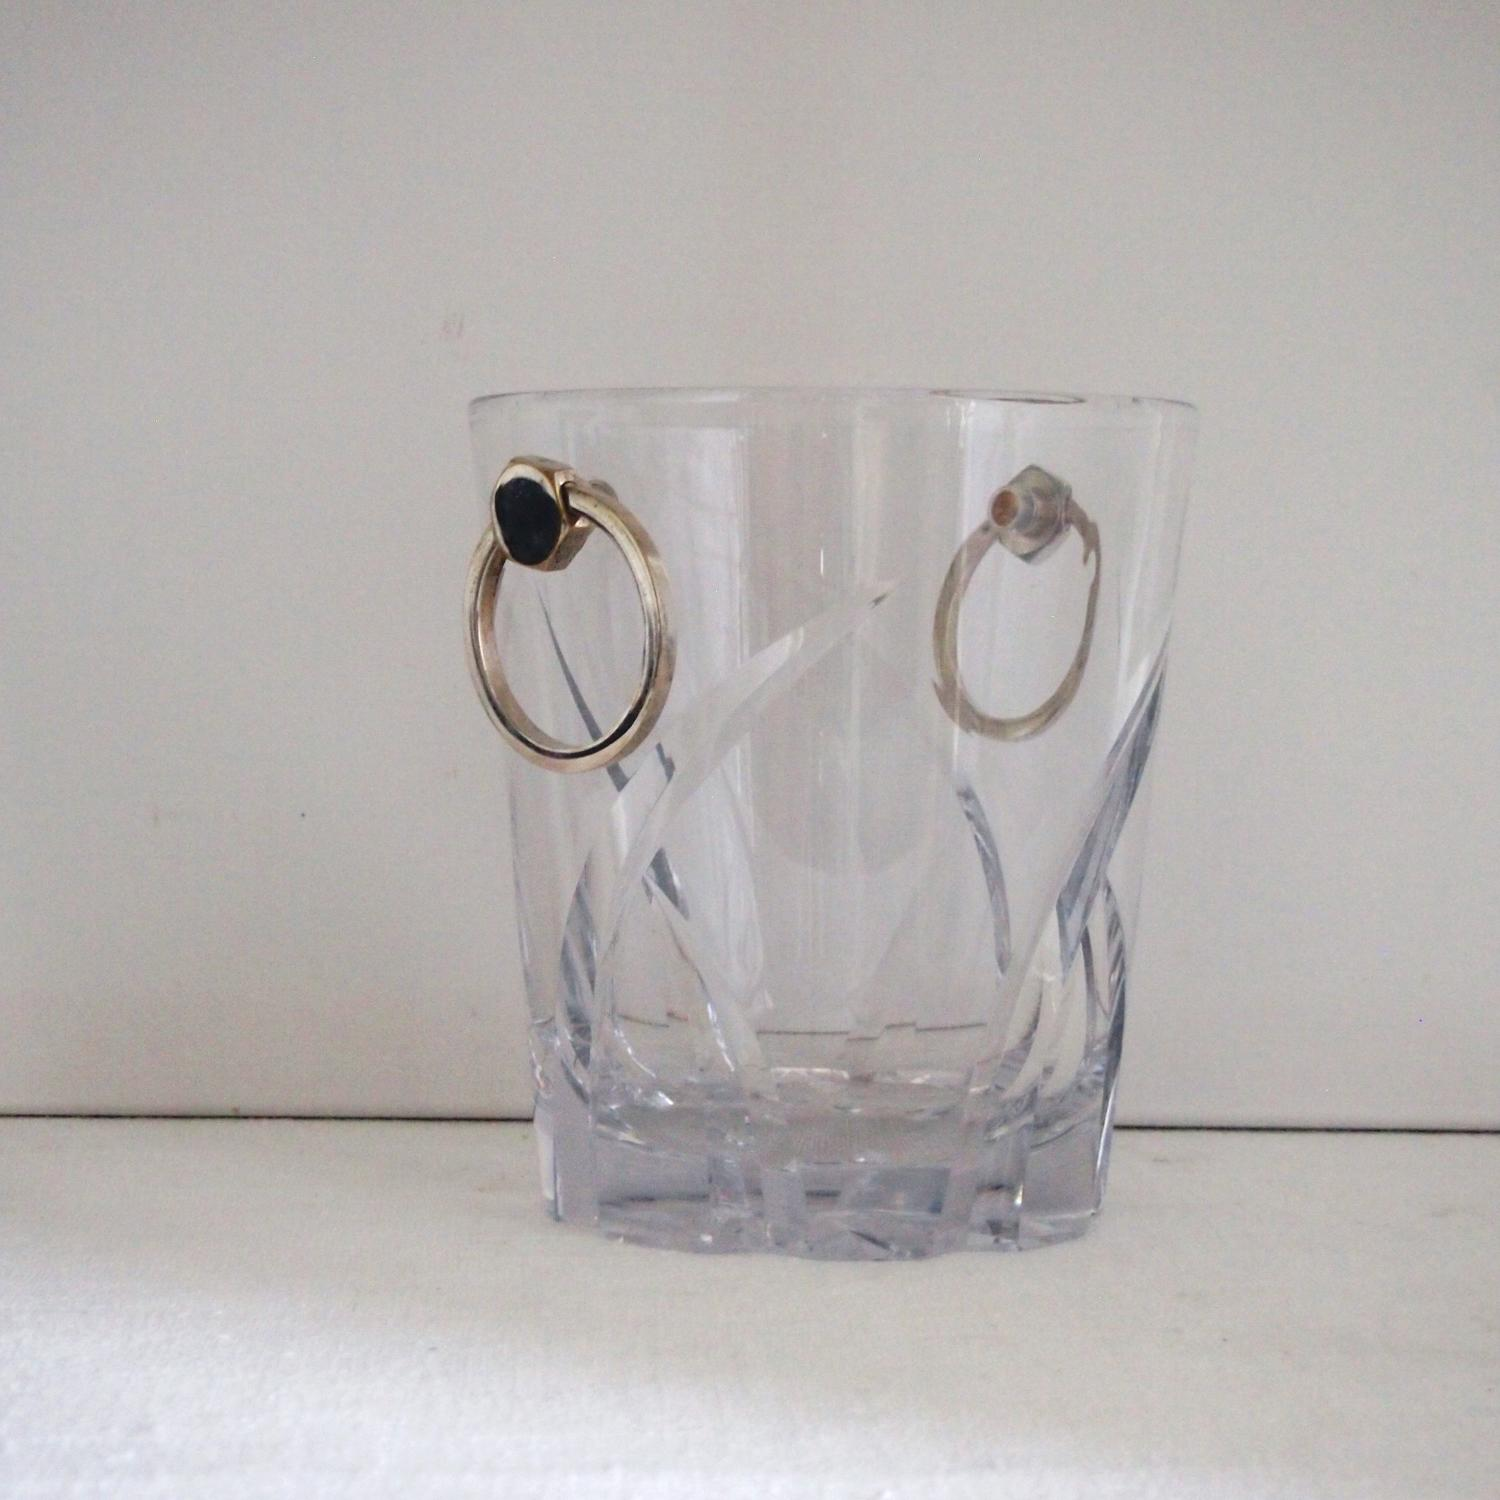 Champagne bucket cut glass & silver plated handles